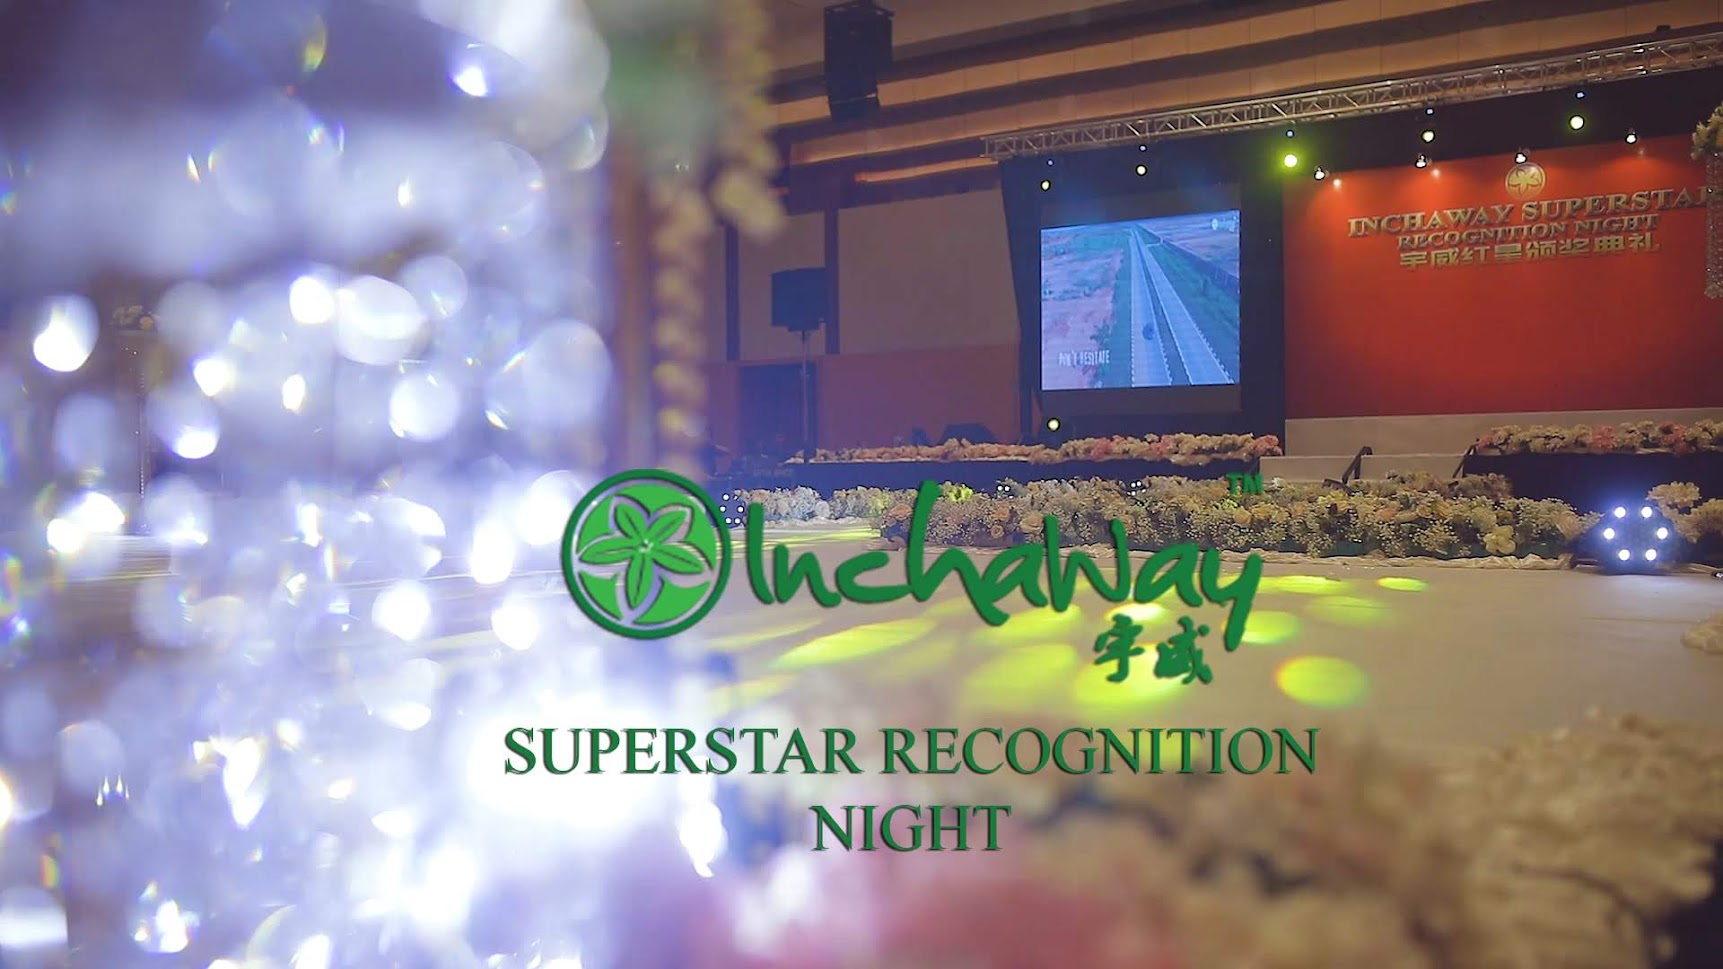 Ichaway Superstar night – Commercial Event Videography Penang